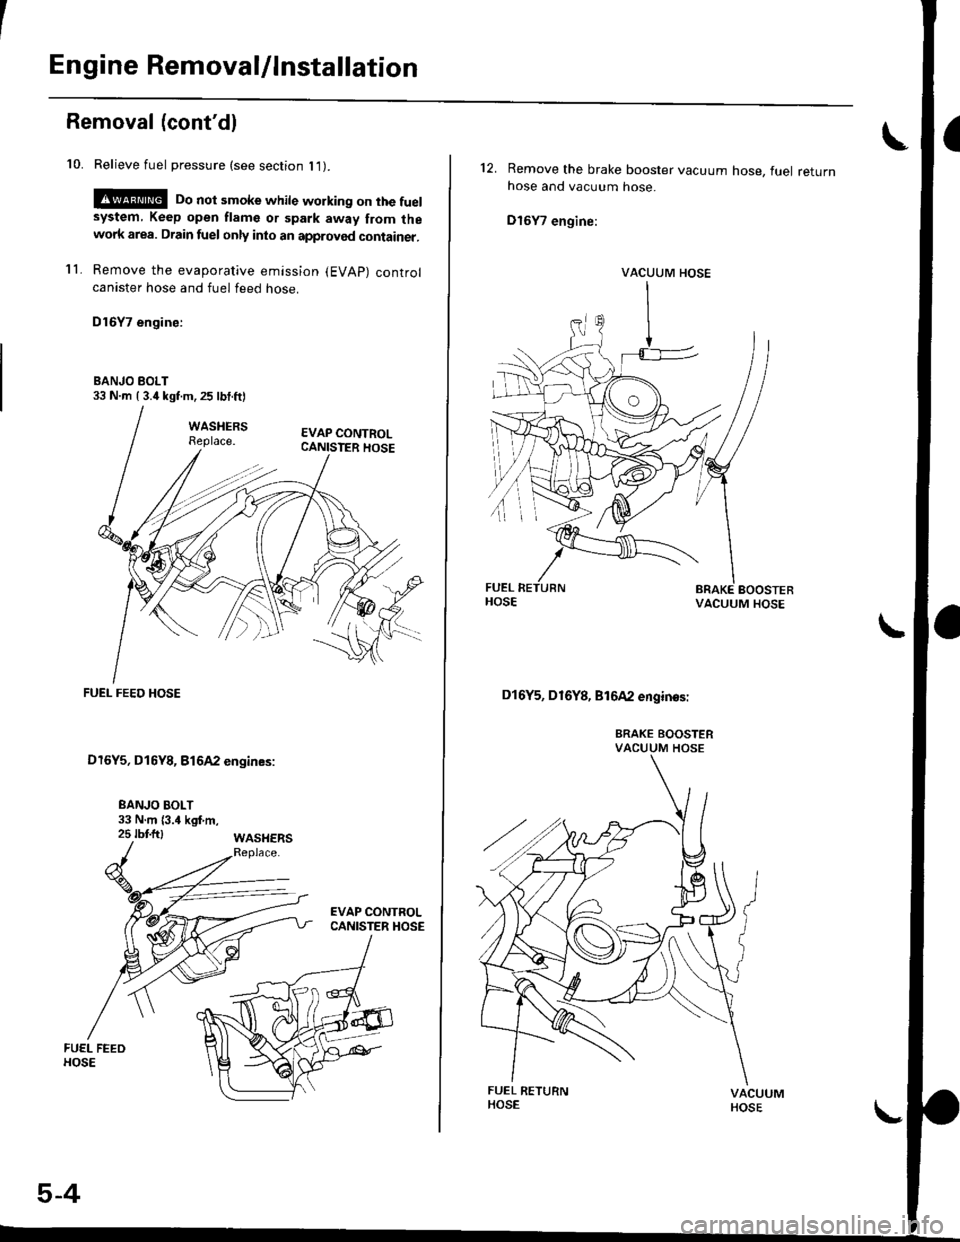 Honda civic service manual pdf